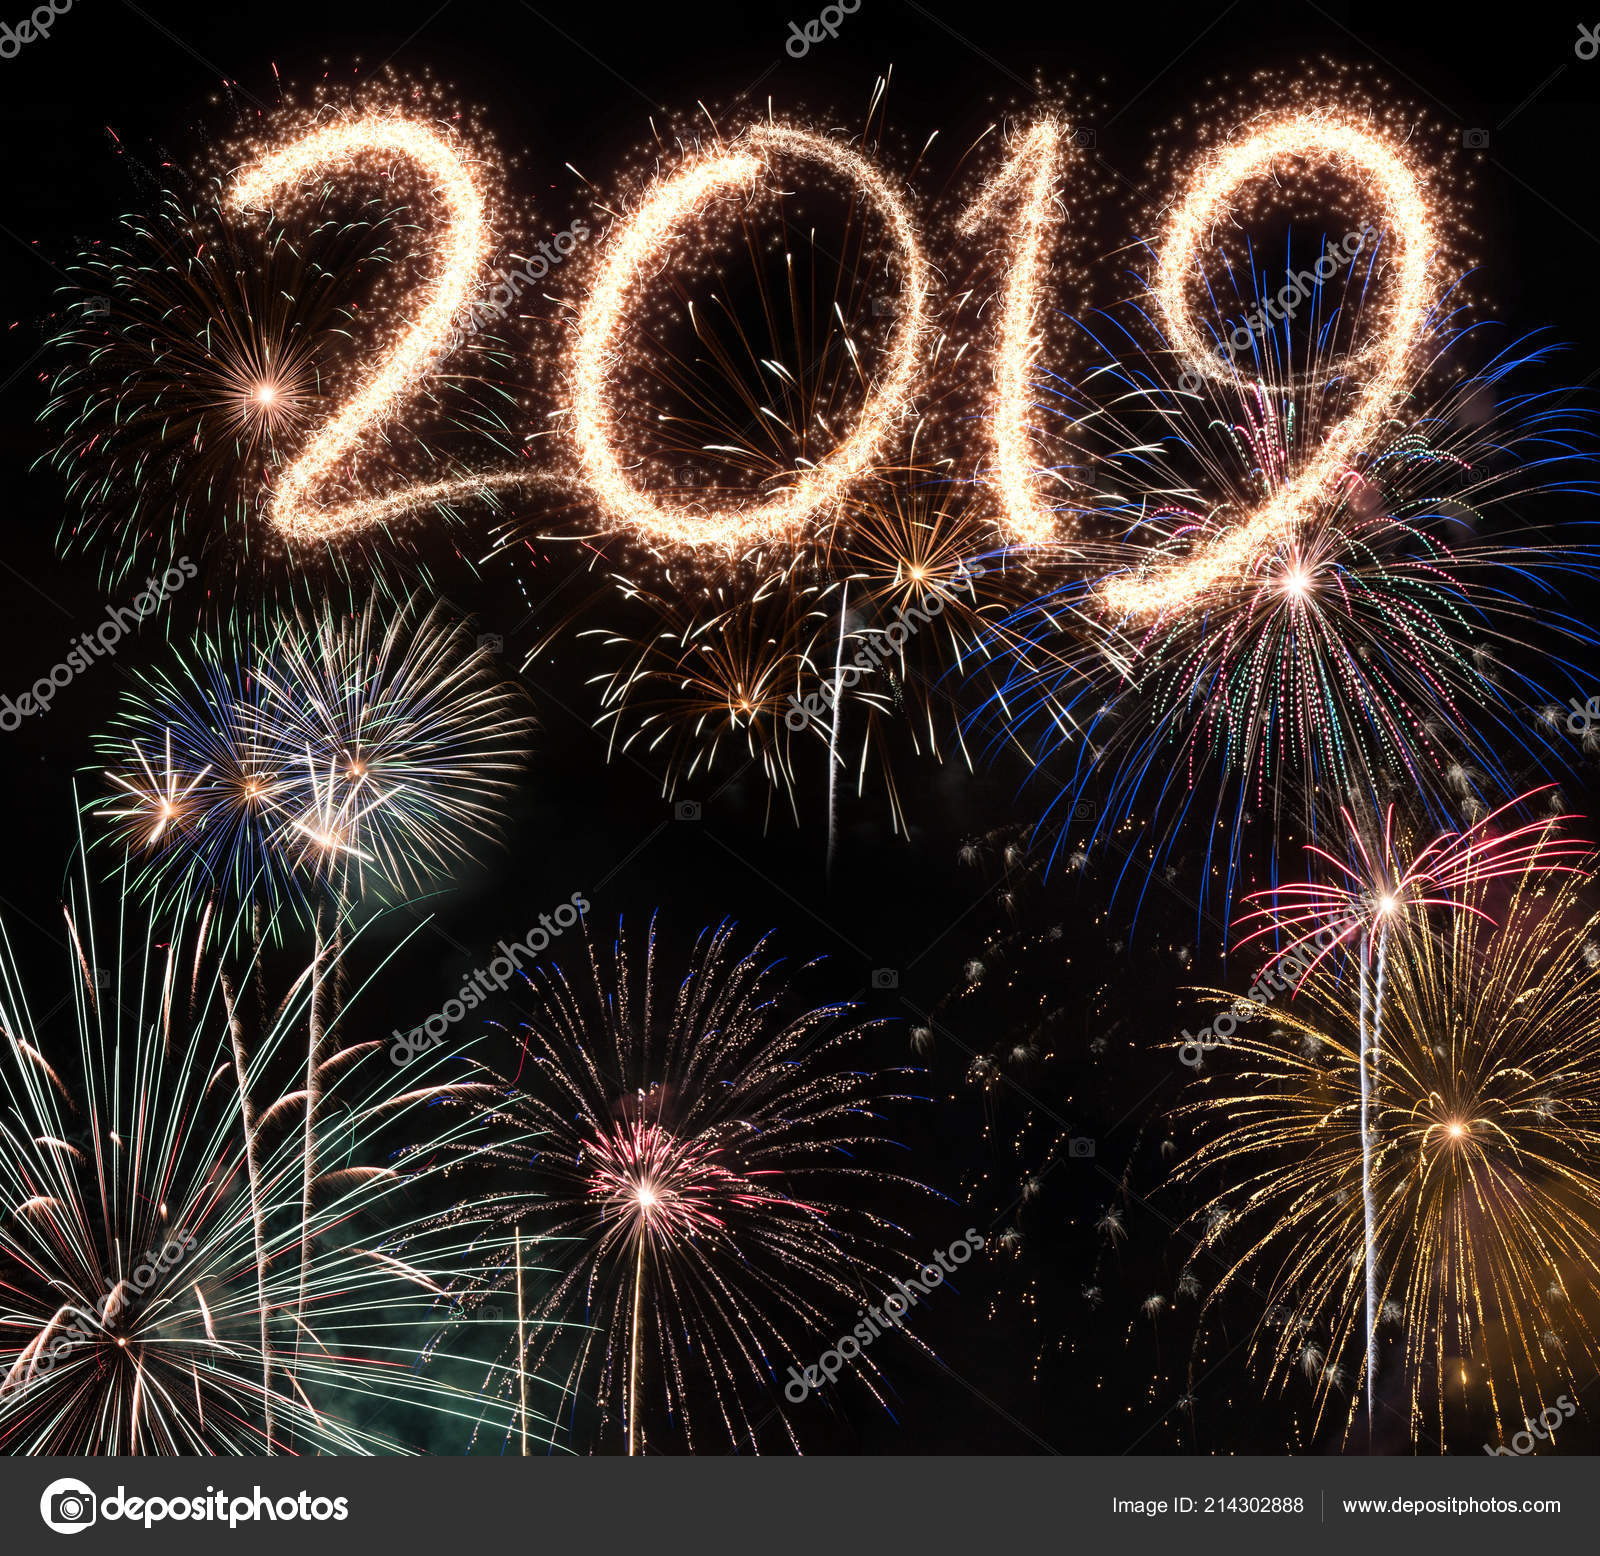 Pmages: wallpaper new year eve  New Year Eve 2019 Fireworks Black